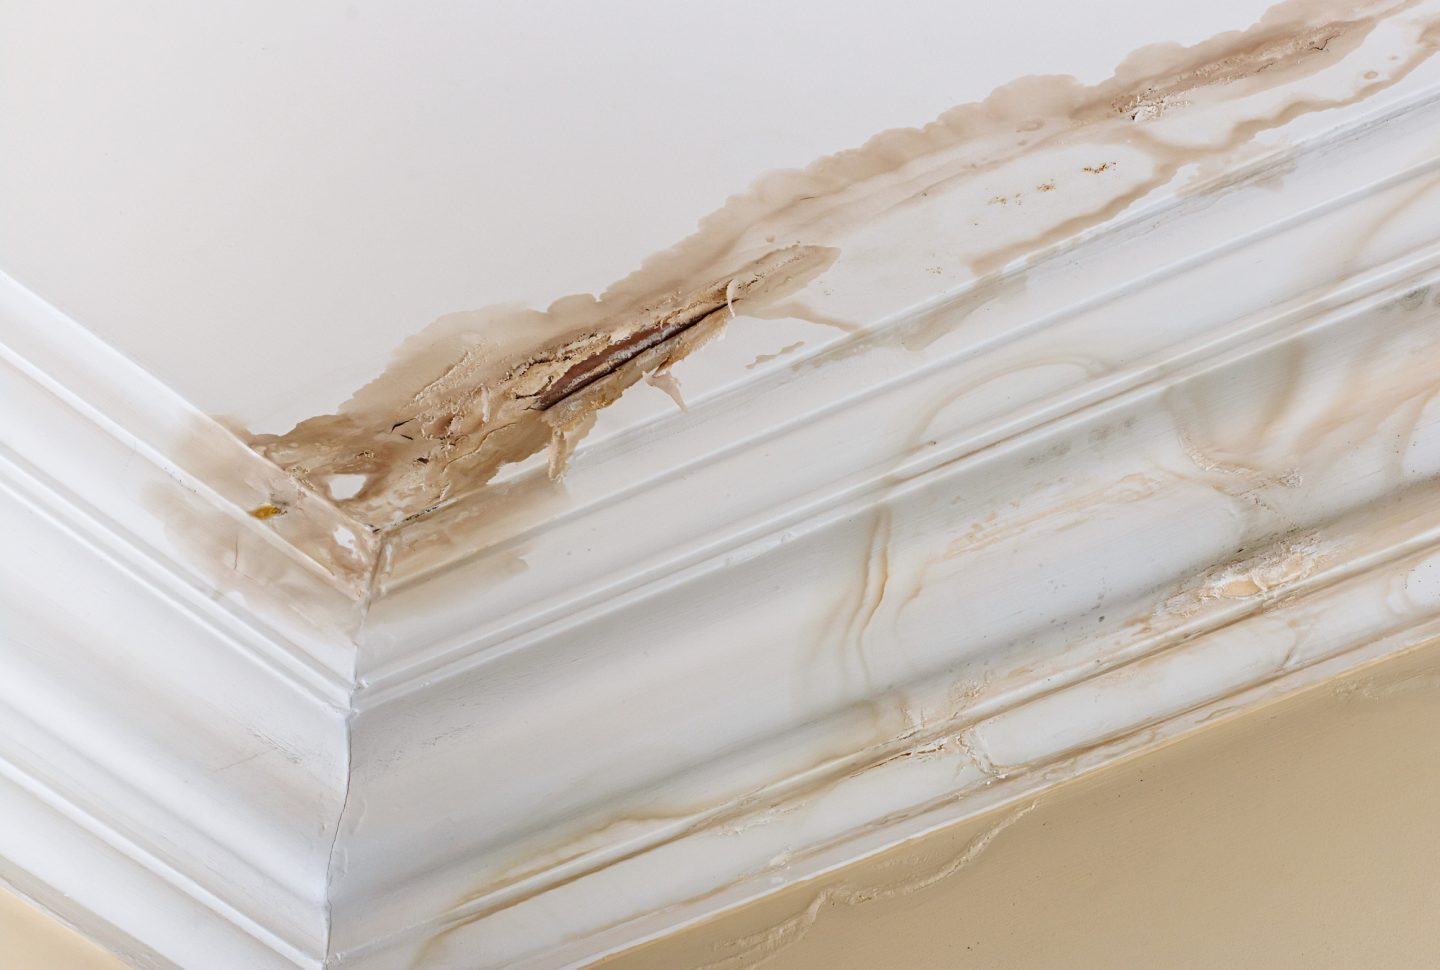 6 Early Signs of Water Damage That You Should Never Ignore